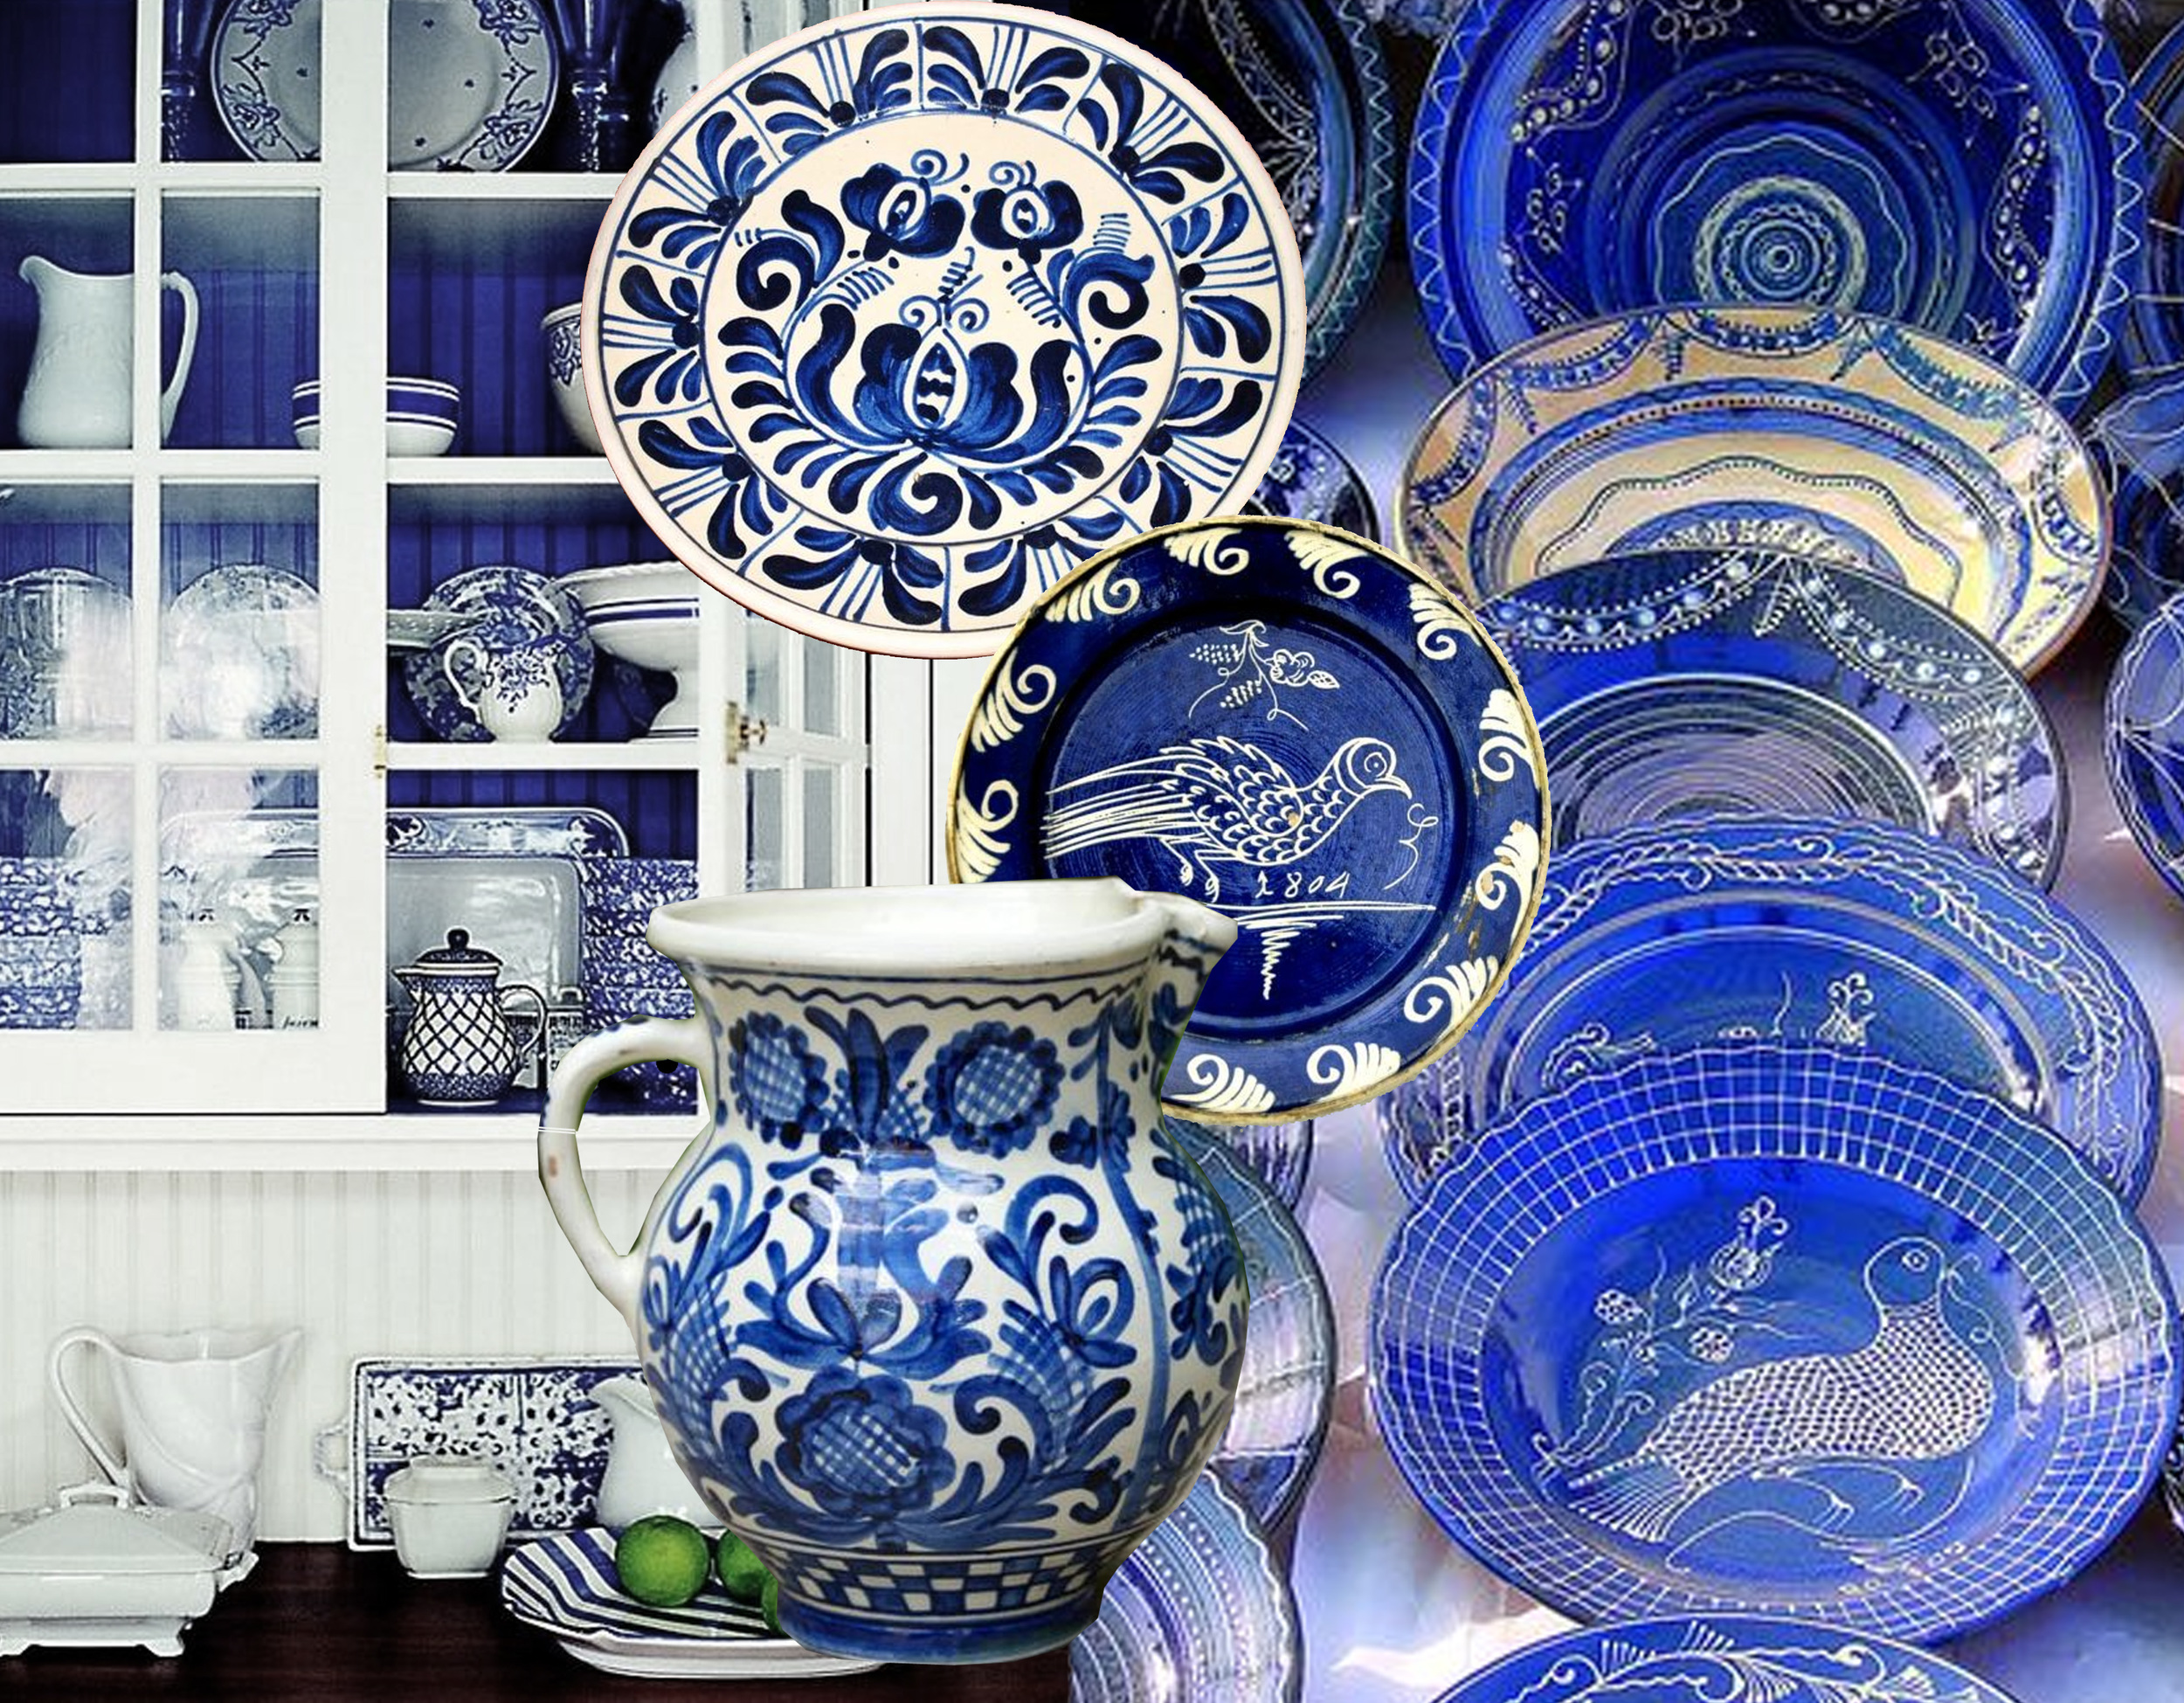 icture painted kitchen cabinet  One Kings Lane  - traditional Romanian ceramics on  Pinterest